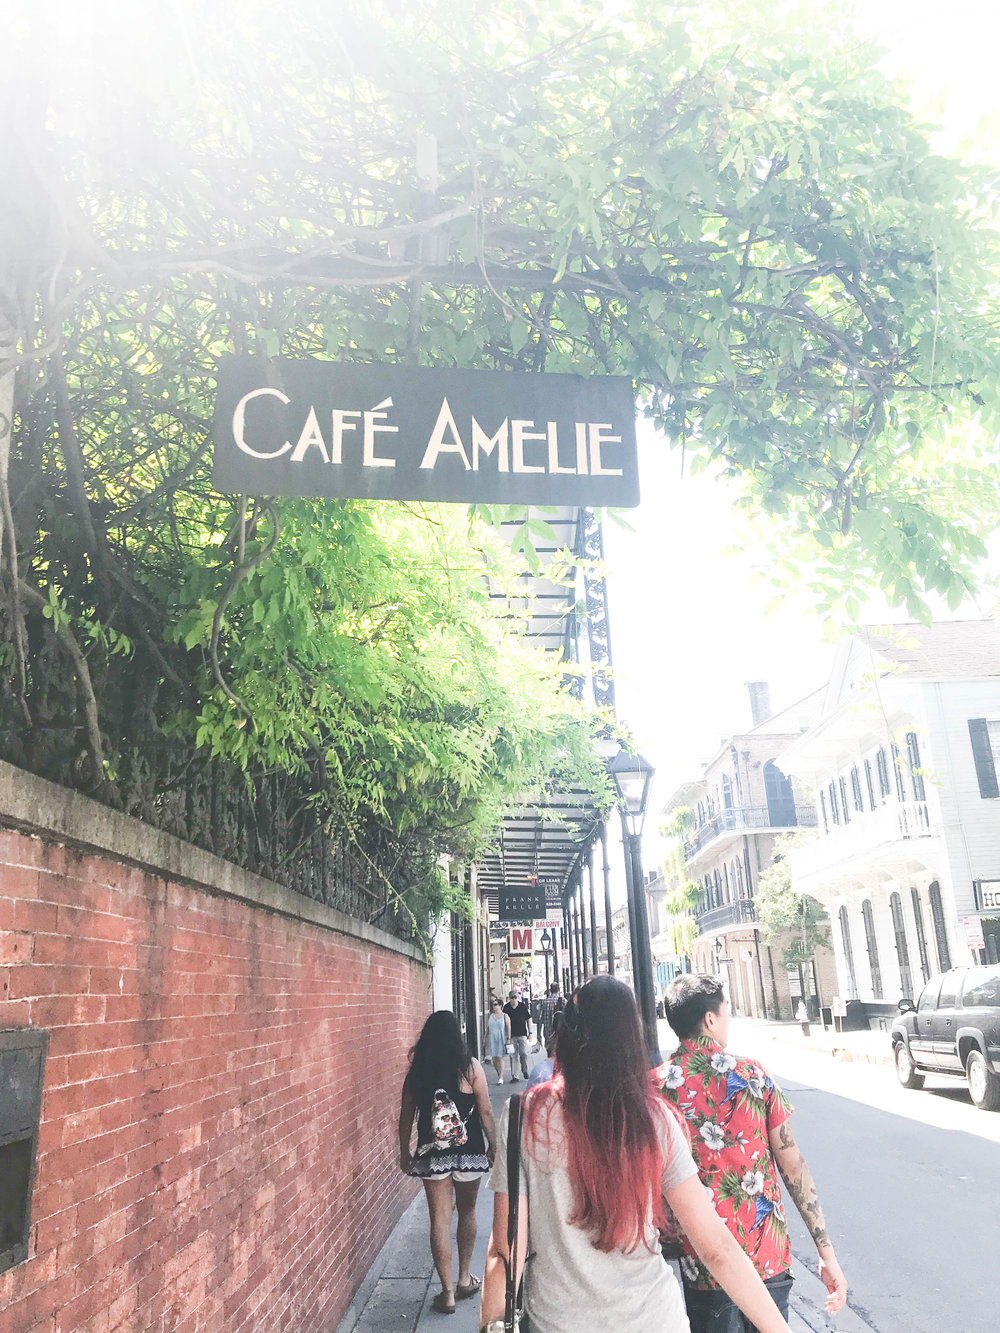 New Orleans travel guide for bloggers